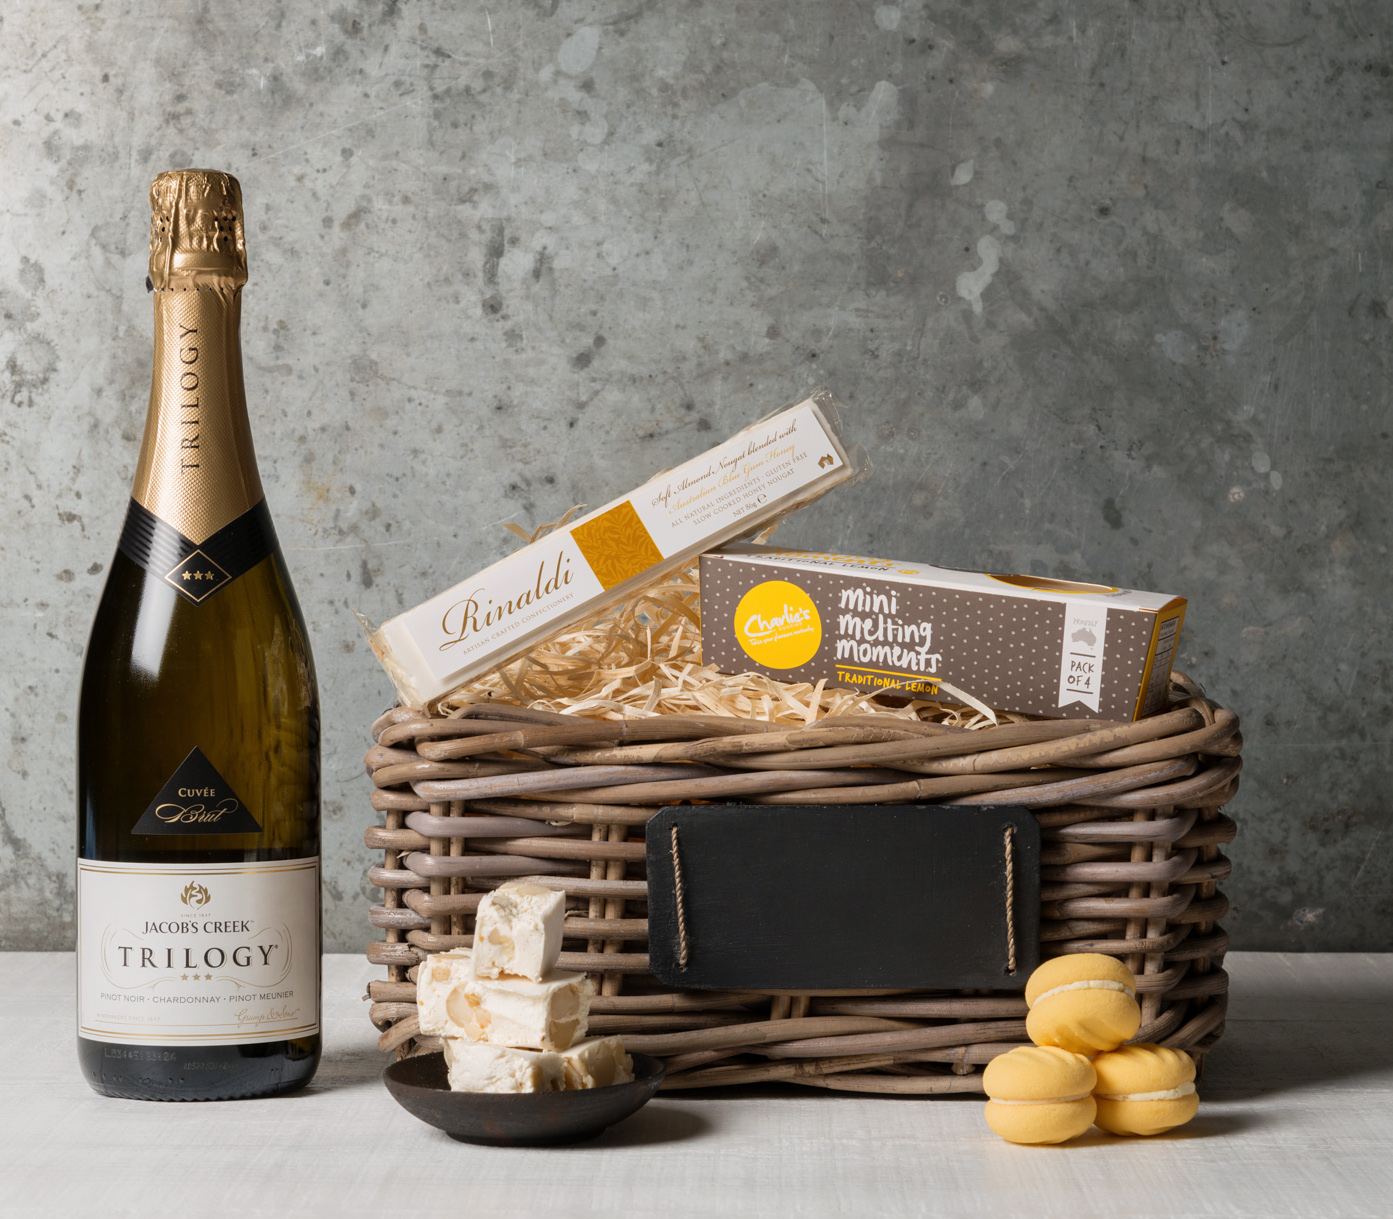 send a welcome basket Support, encourage & inspire with a college care package from hip kits our gifts are great for birthday gifts, to provide fuel for late night study sessions, or just to let them know you're thinking of them.